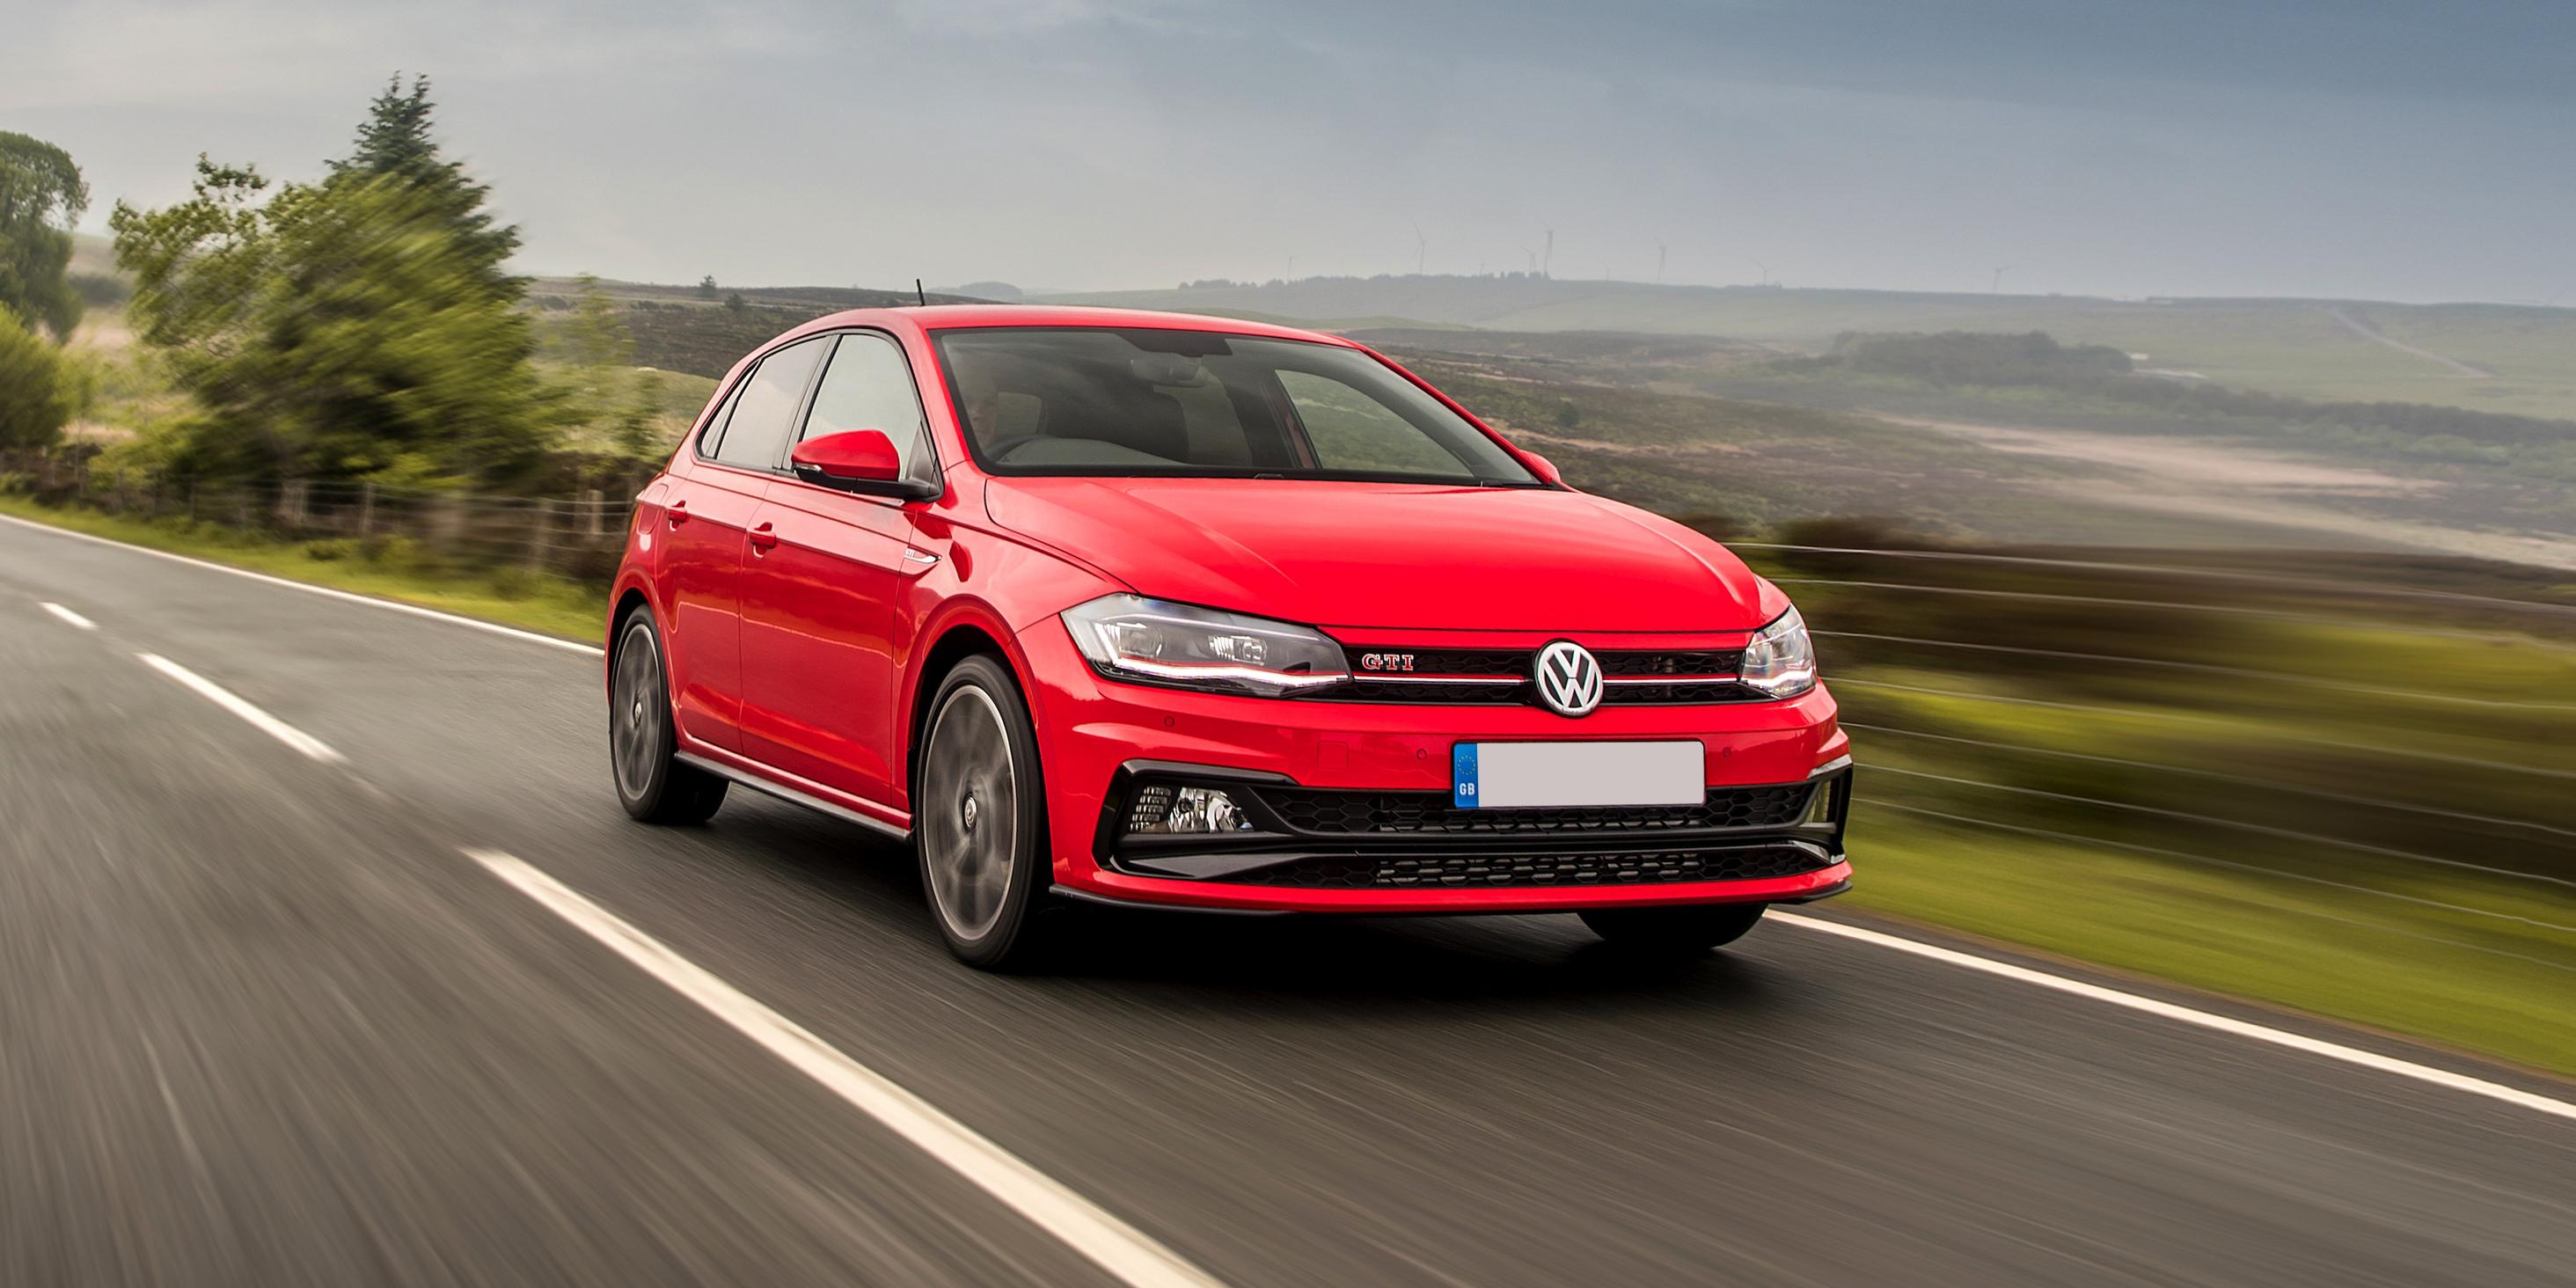 Volkswagen Golf Hatchback Car Leasing Deals | Nationwide Vehicle ...